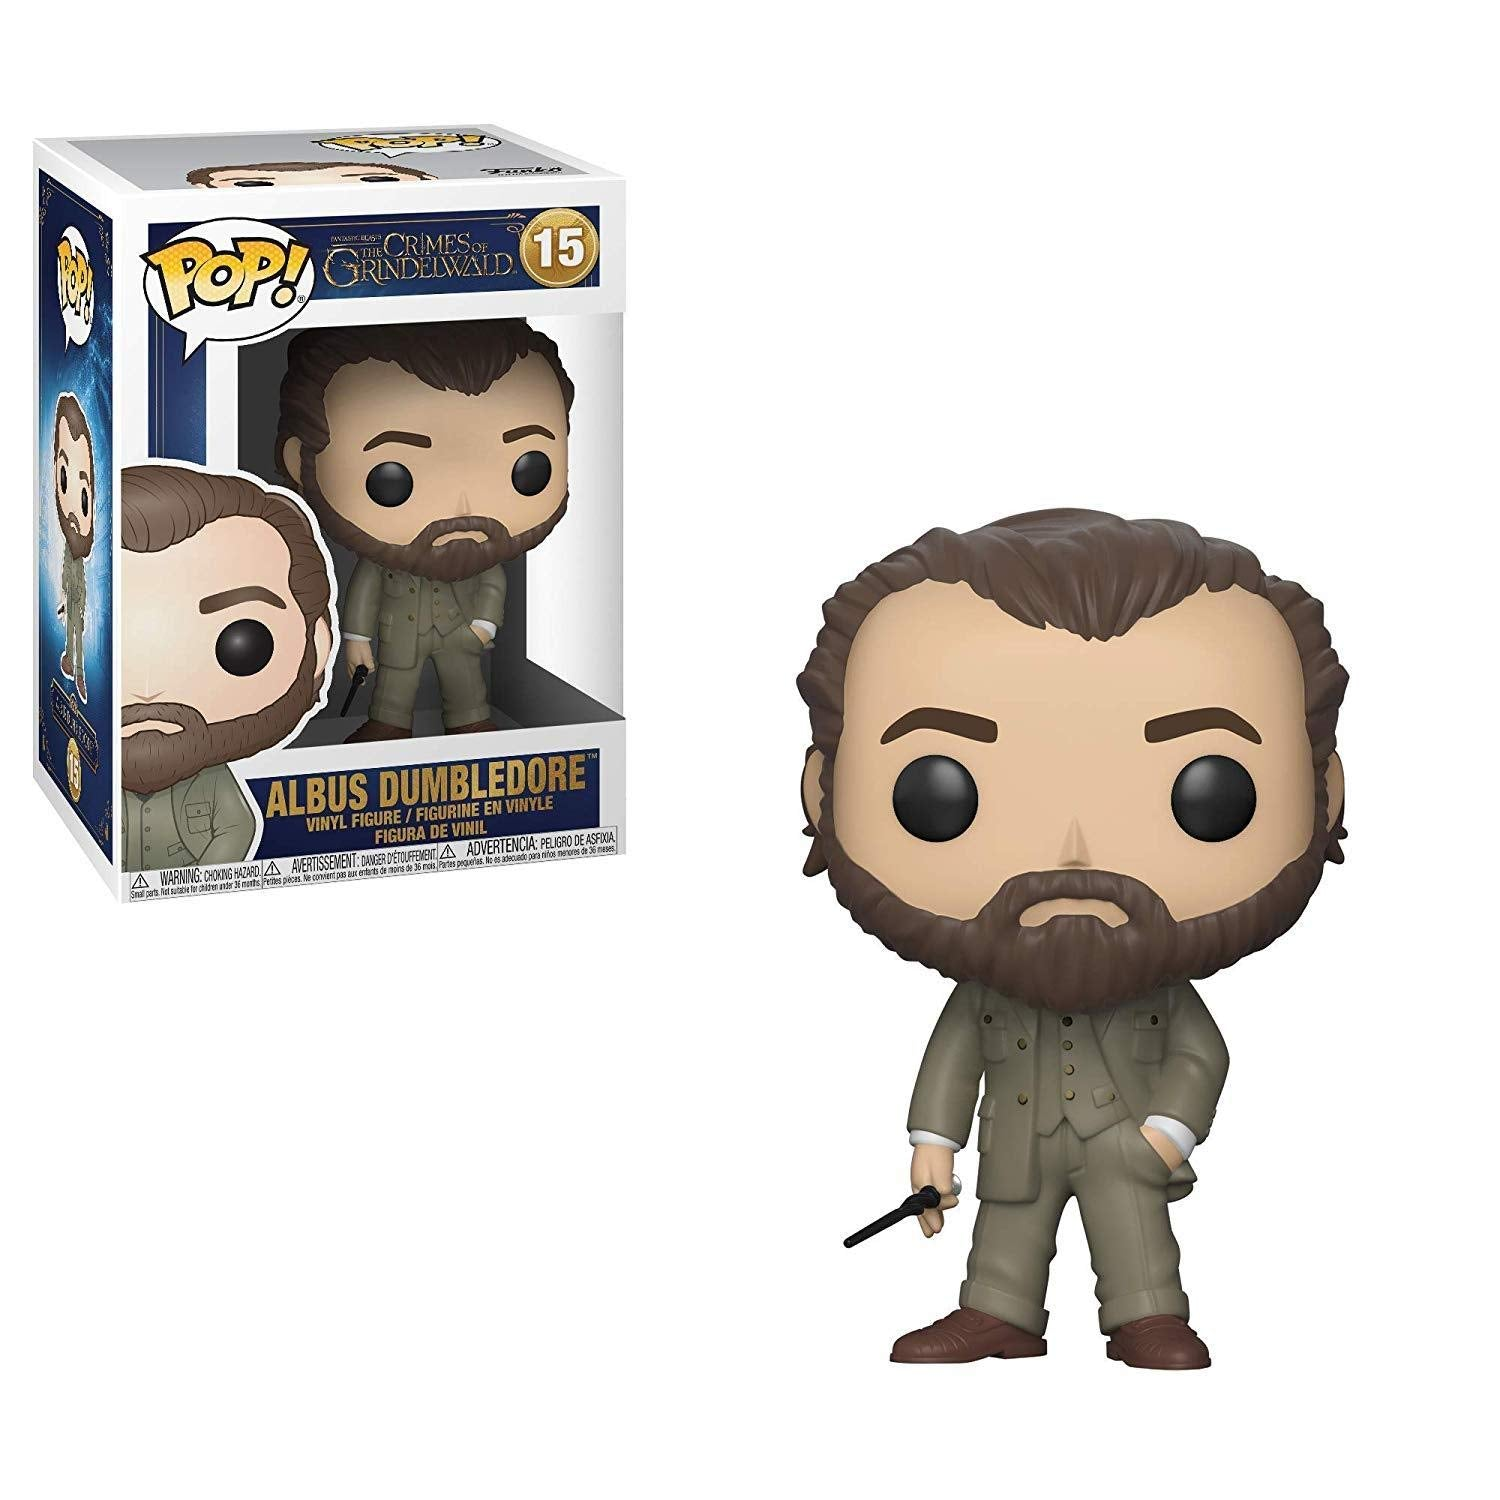 Funko 32750 Pop Movies: Fantastic Beasts 2 - Dumbledore, Multicolor